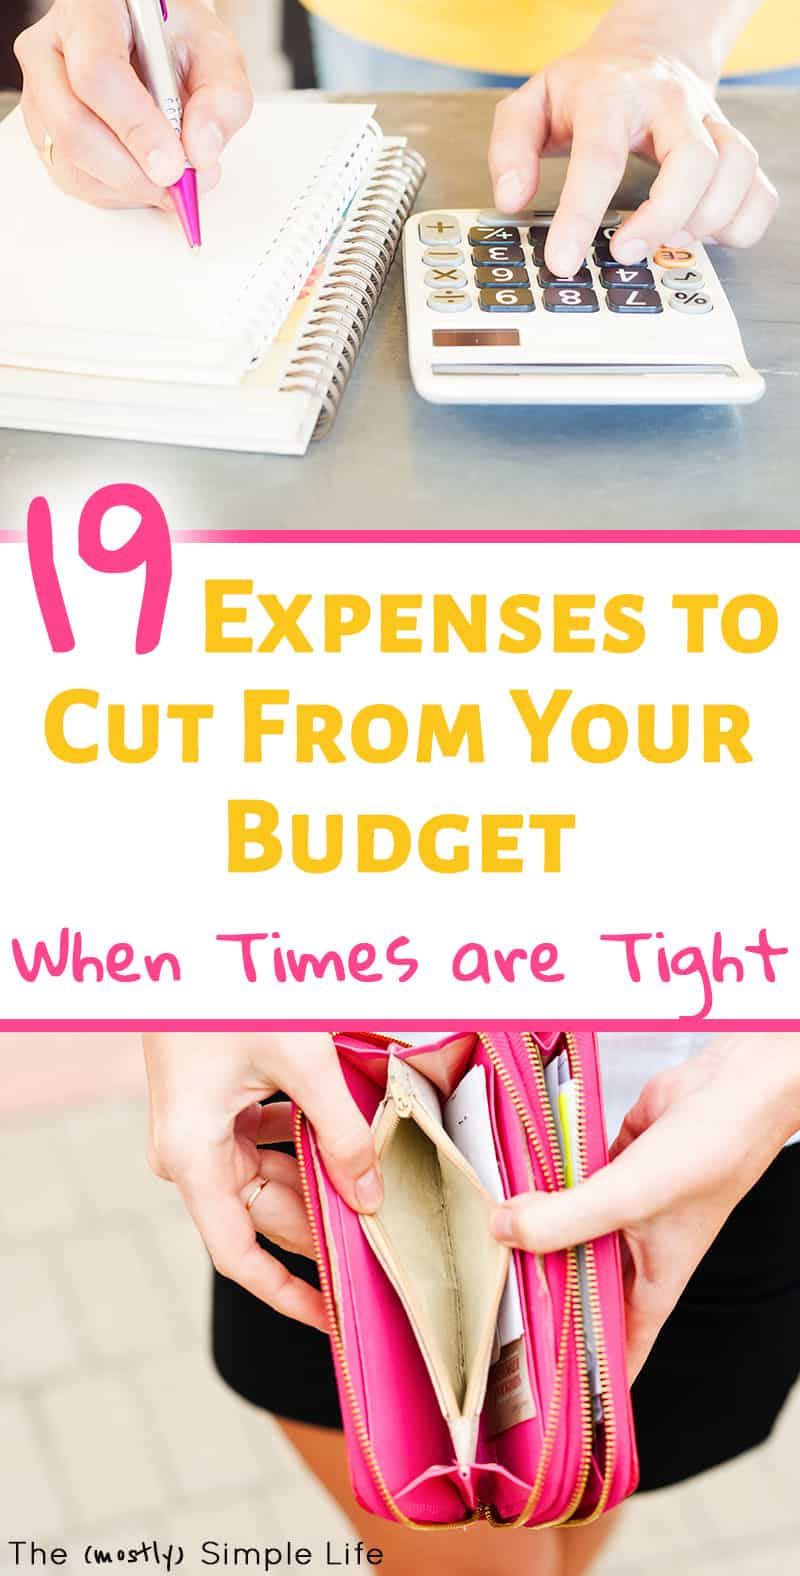 19 Expenses to Cut From Your Budget When Things are Tight